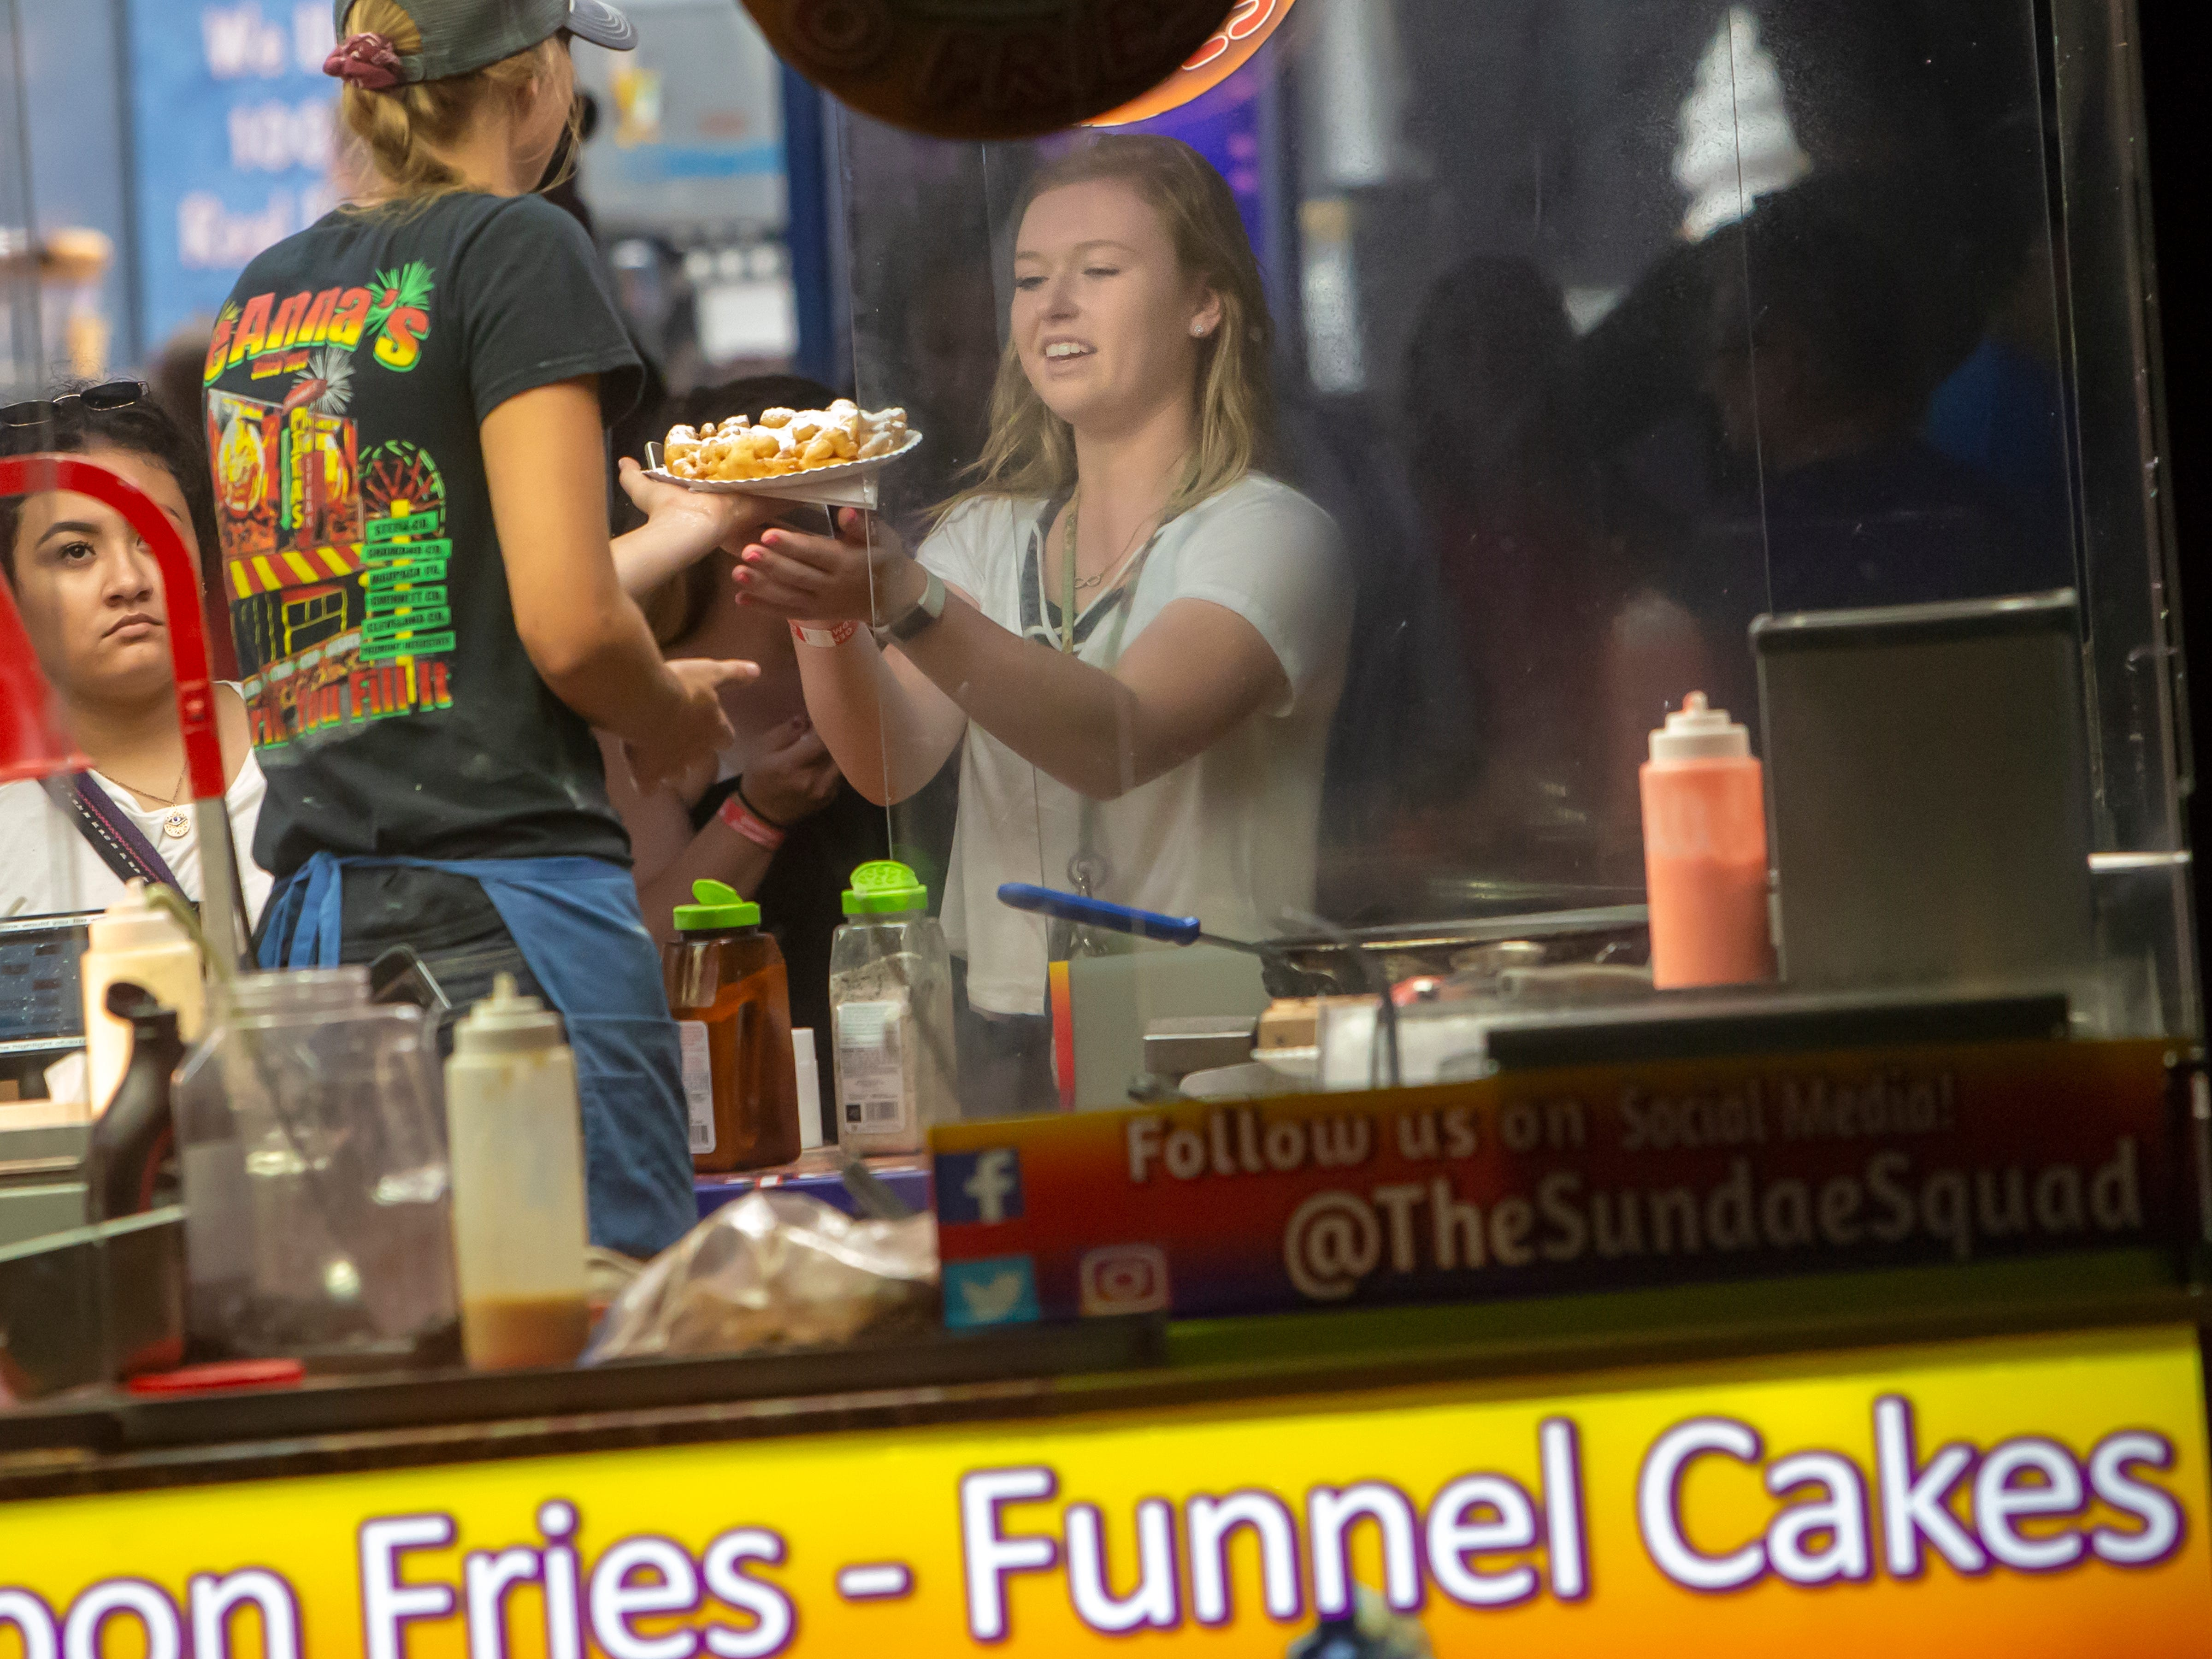 Tierney Ecklund orders a funnel cake Saturday during the Winnebago County Fair on Saturday, Aug. 4, 2018.